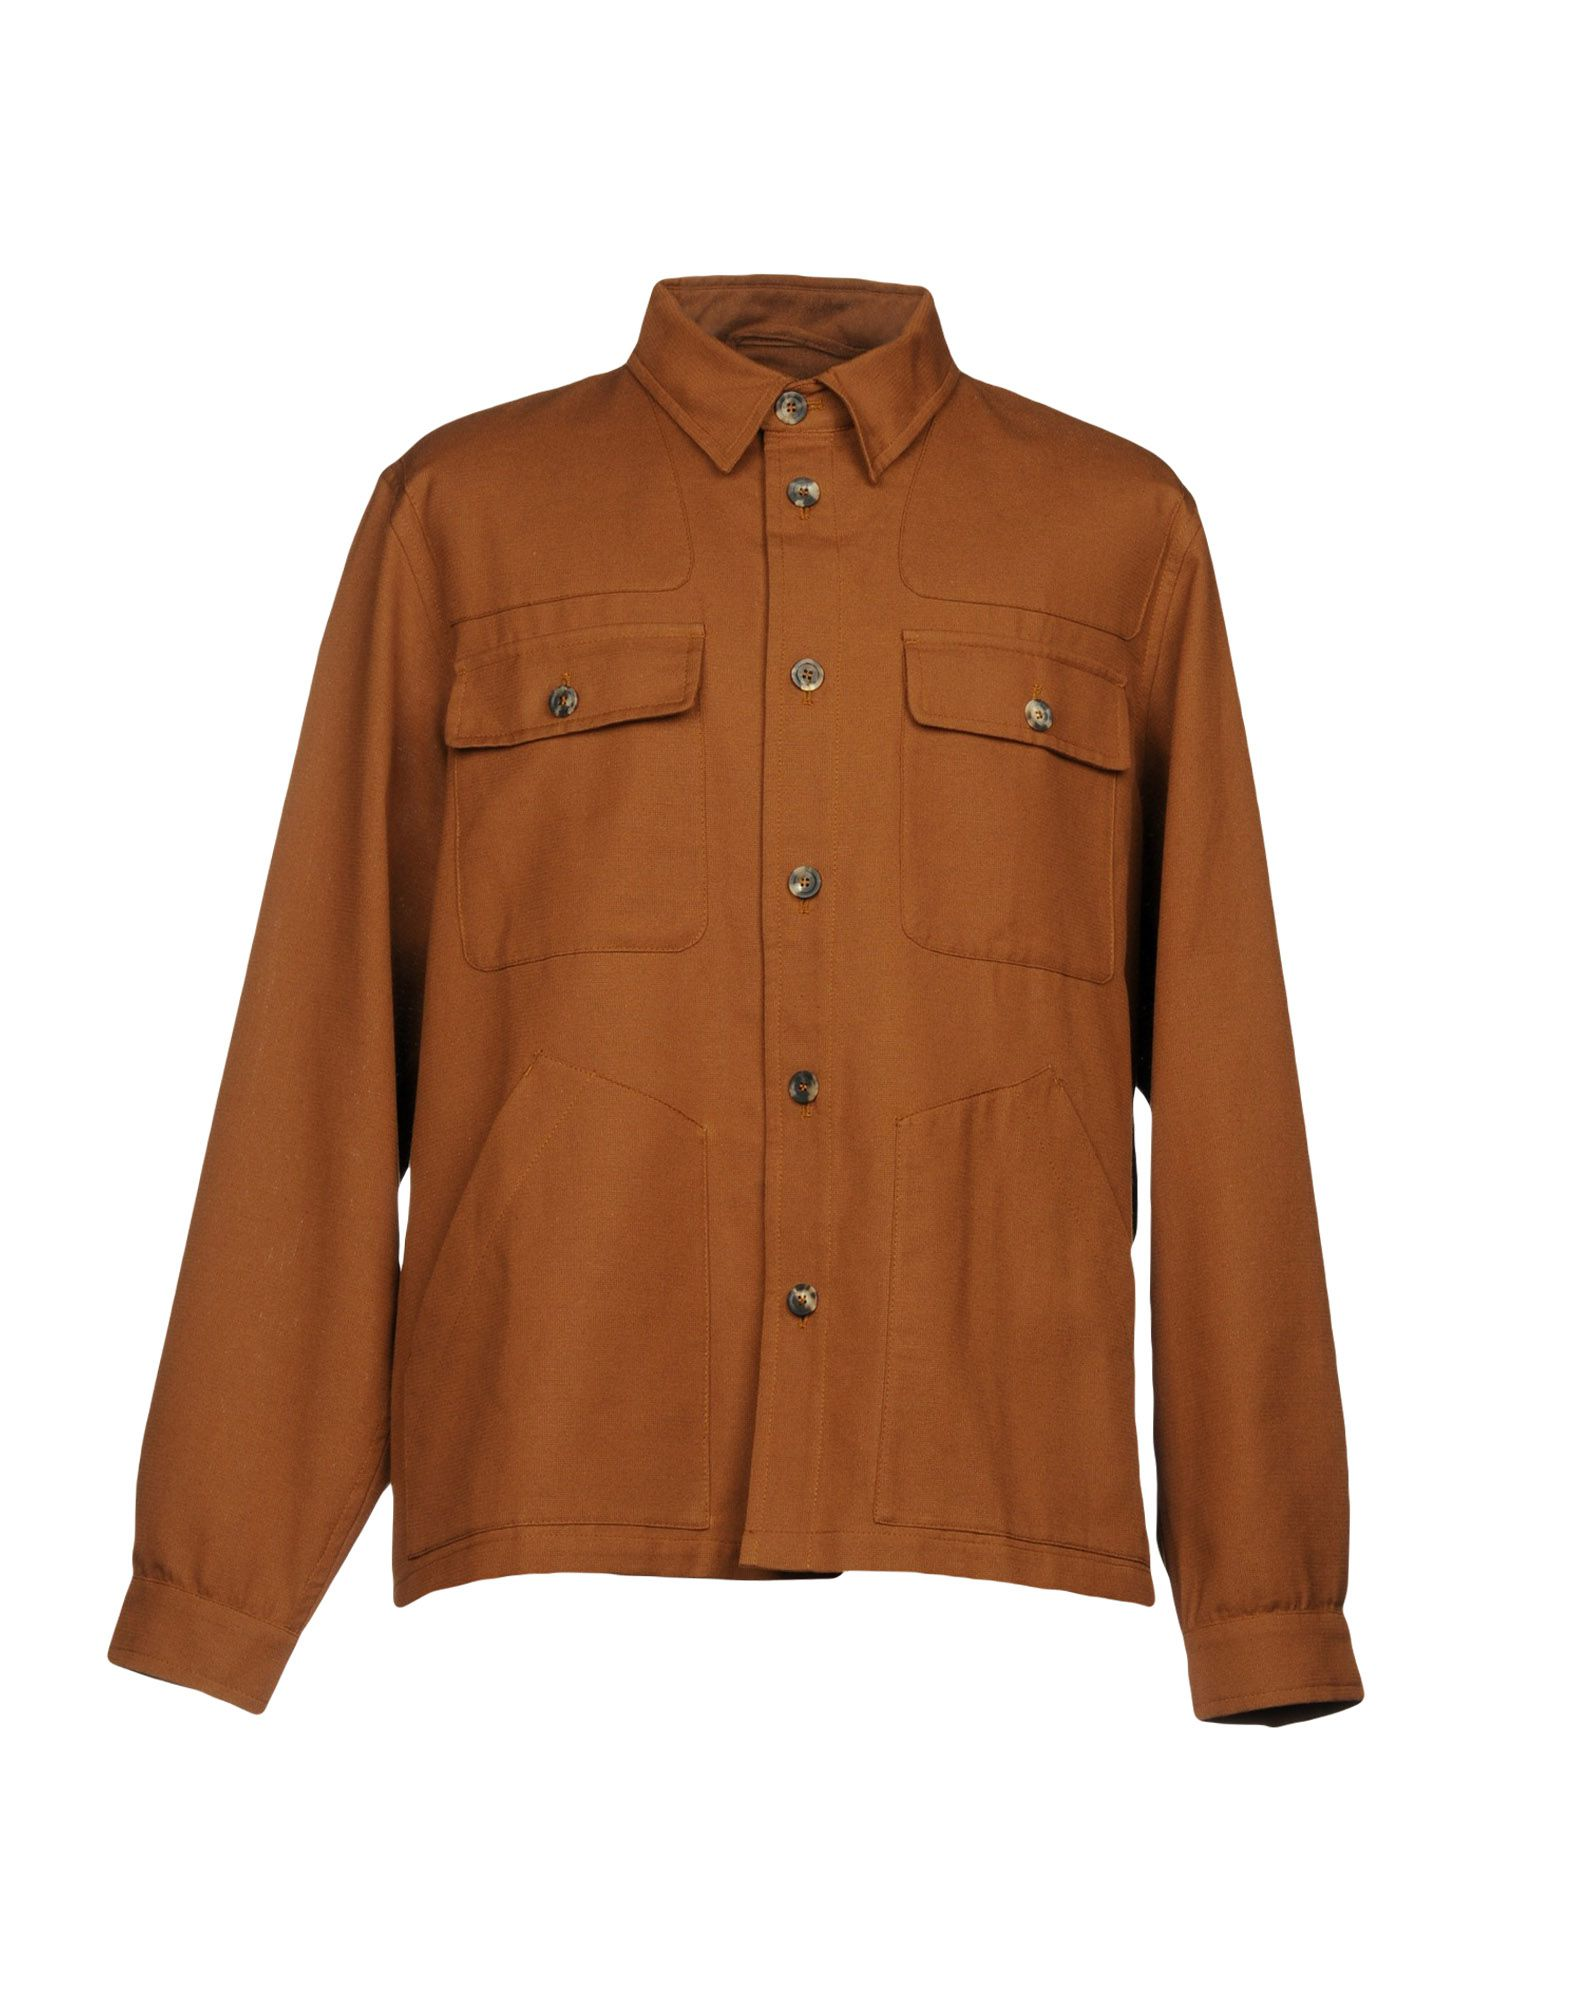 Private White V.c.  Solid color shirt